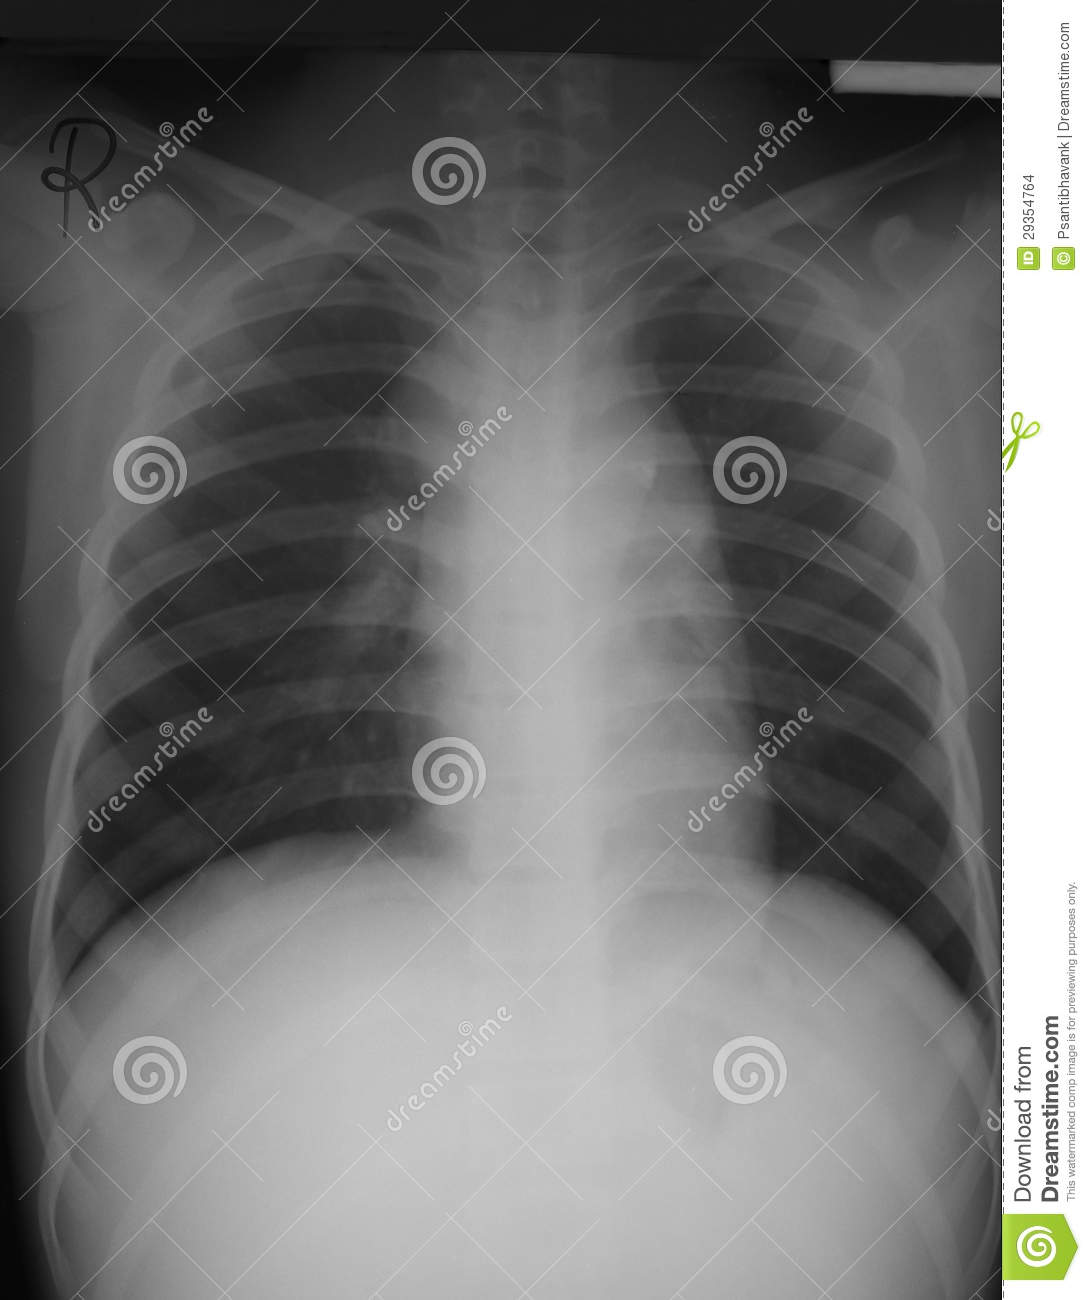 chest film antero posterior (ap) view of a 15 years old man withchest film antero posterior (ap) view of a 15 years old man with